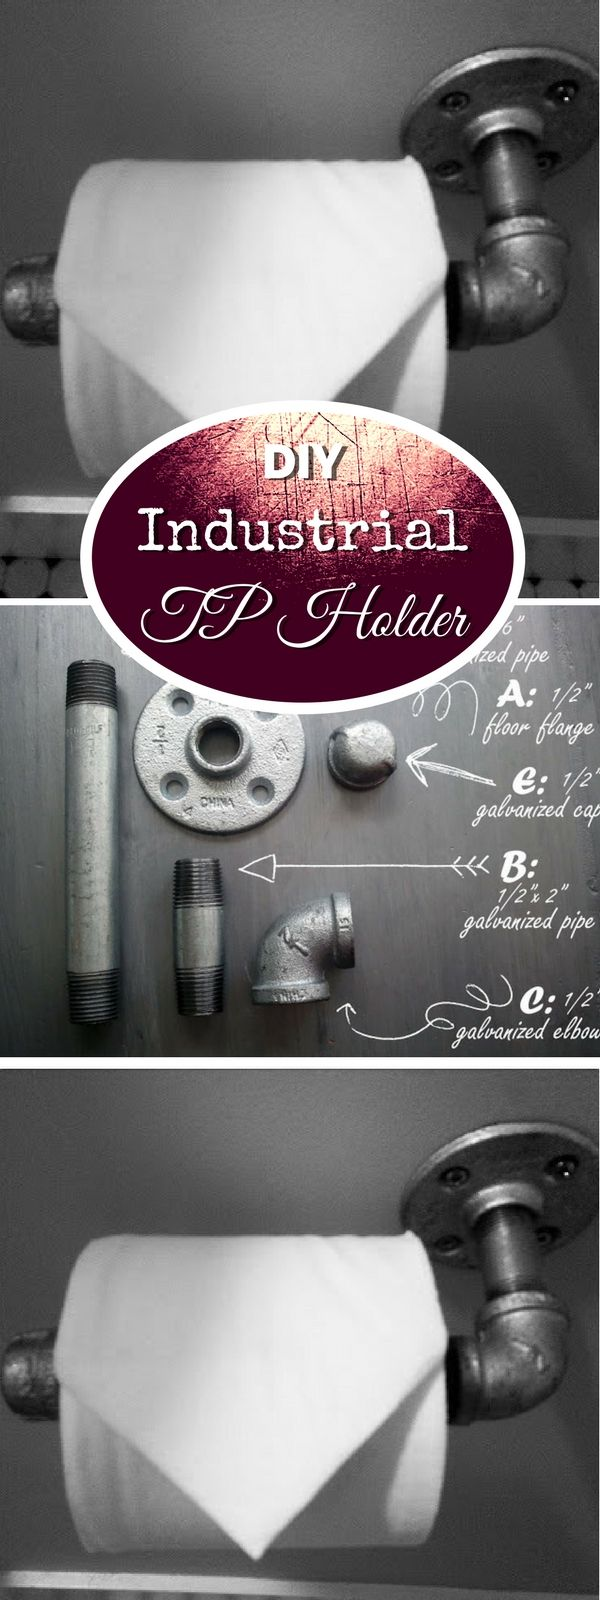 Check out how to make a quick and easy DIY industrial toilet paper holder @istandarddesign